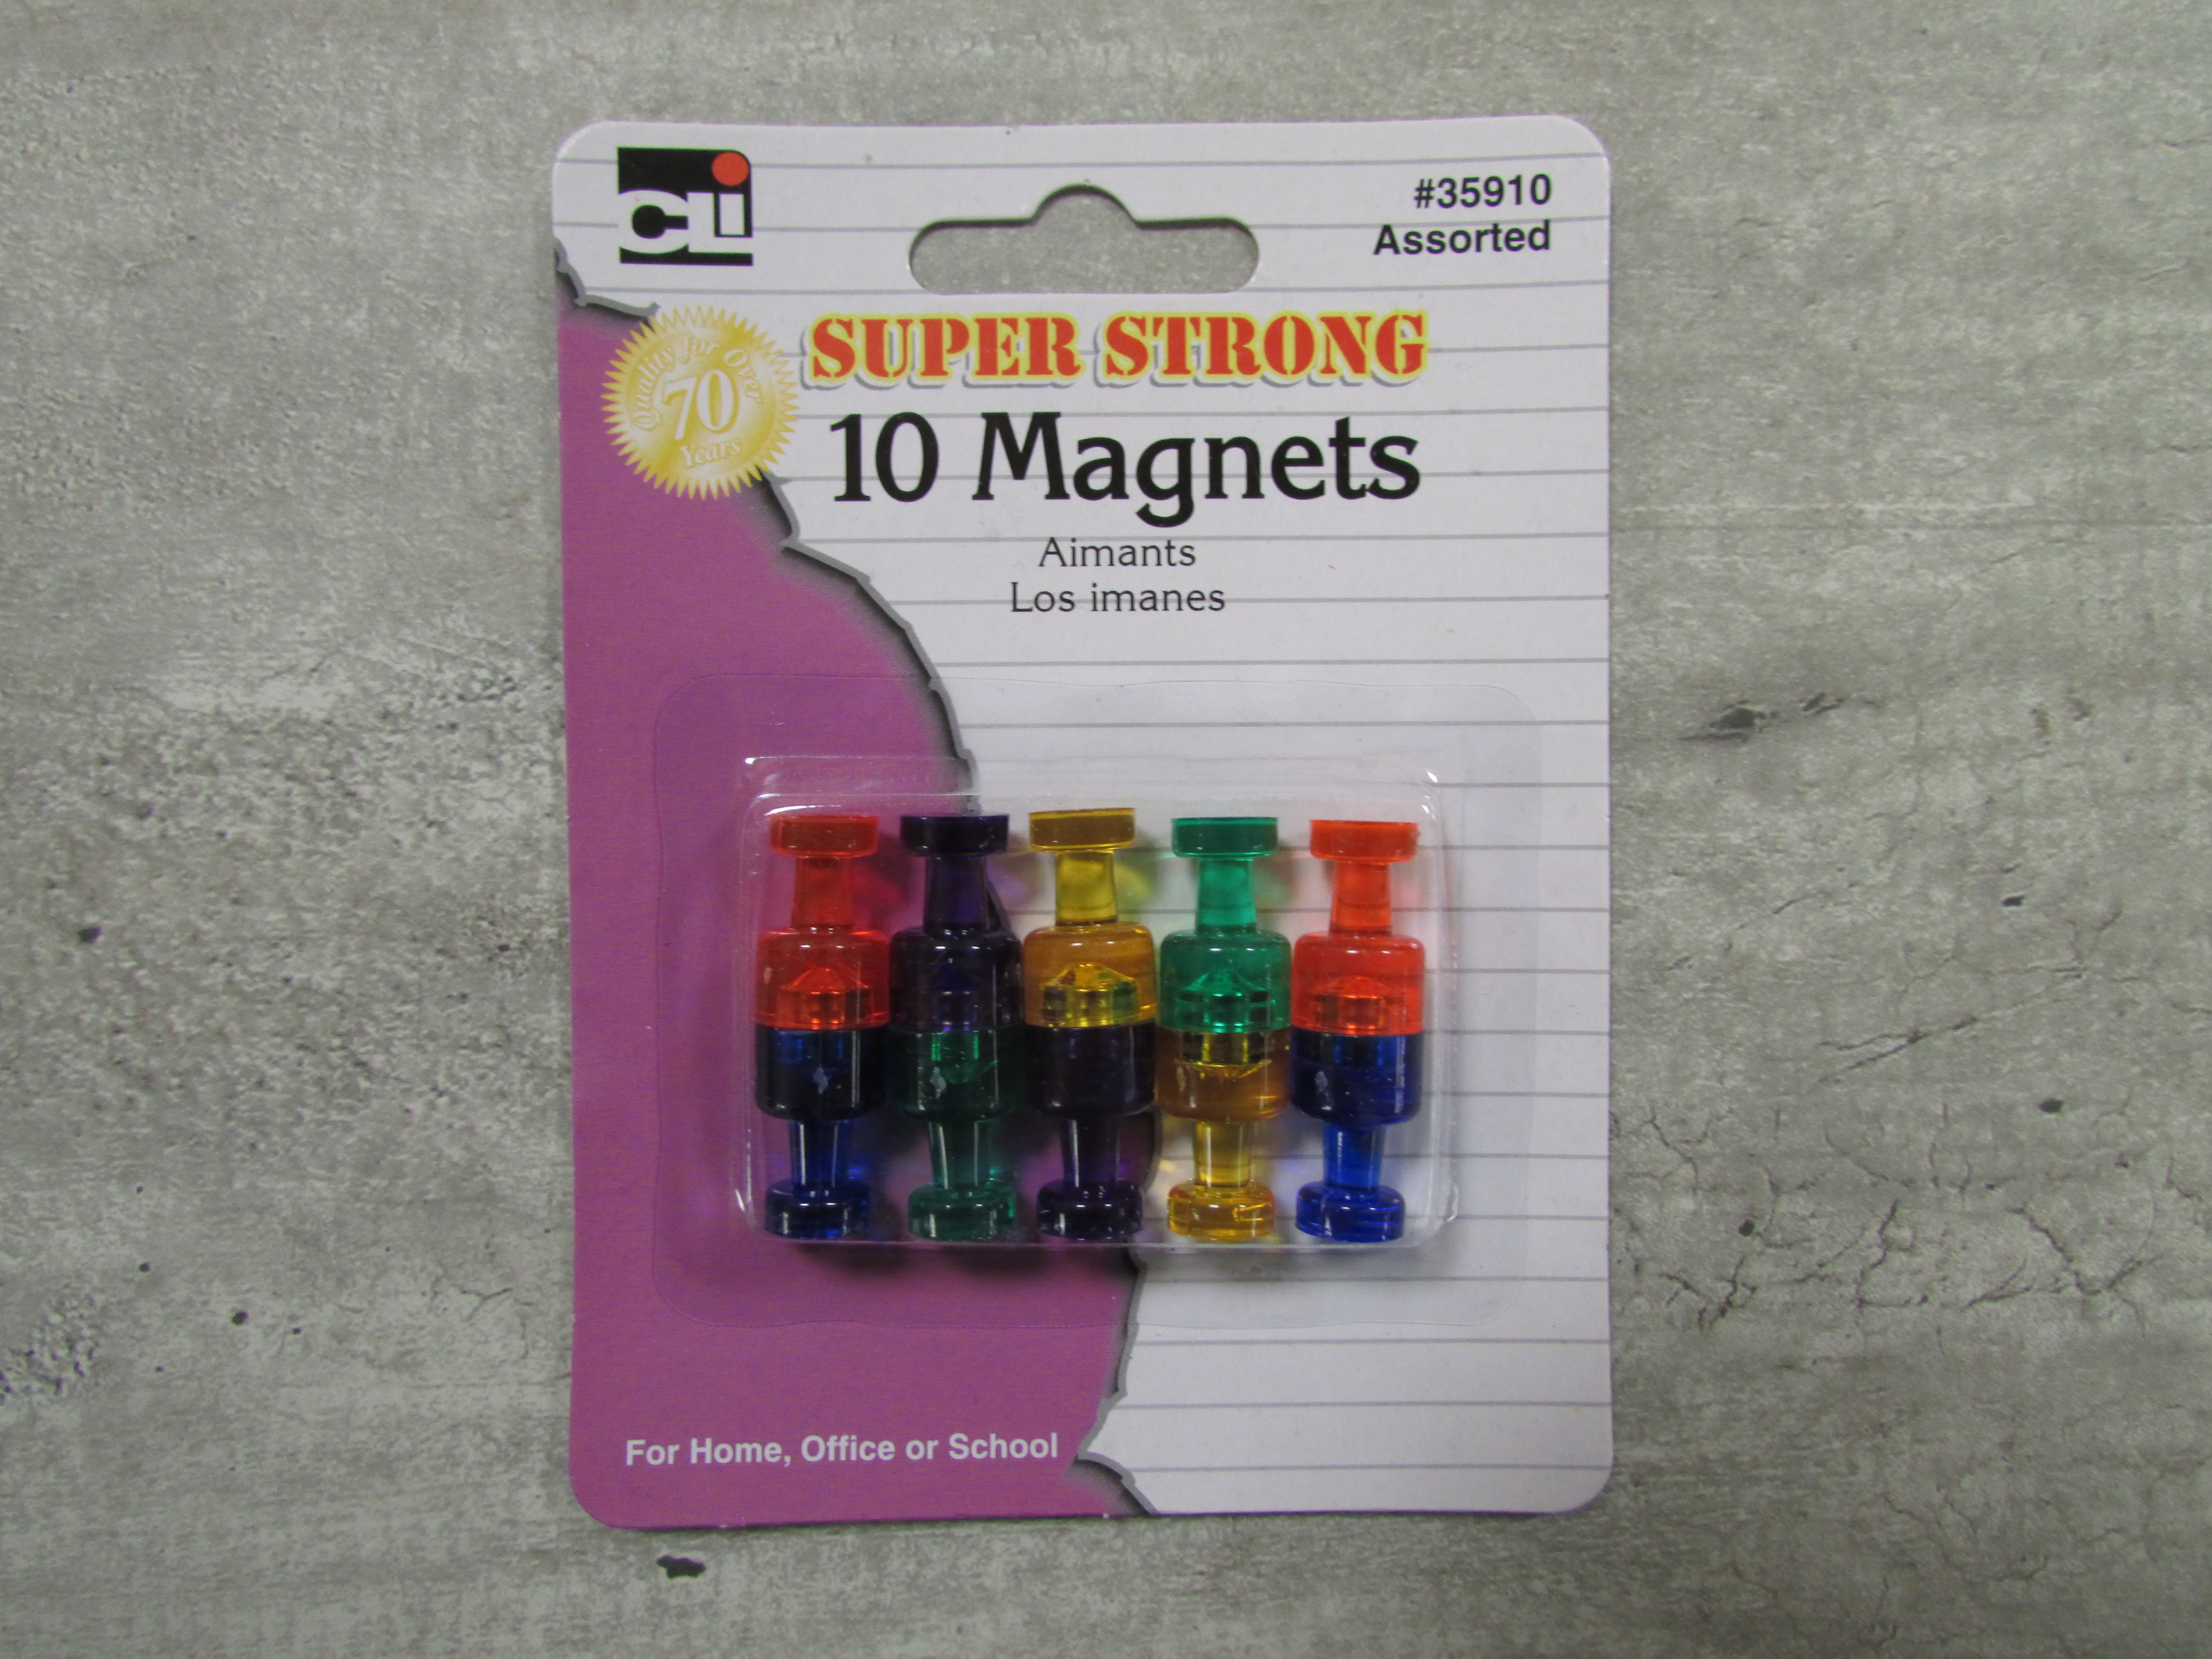 Image for the Magnets, Super Strong, Asst. Colors 10/pk product